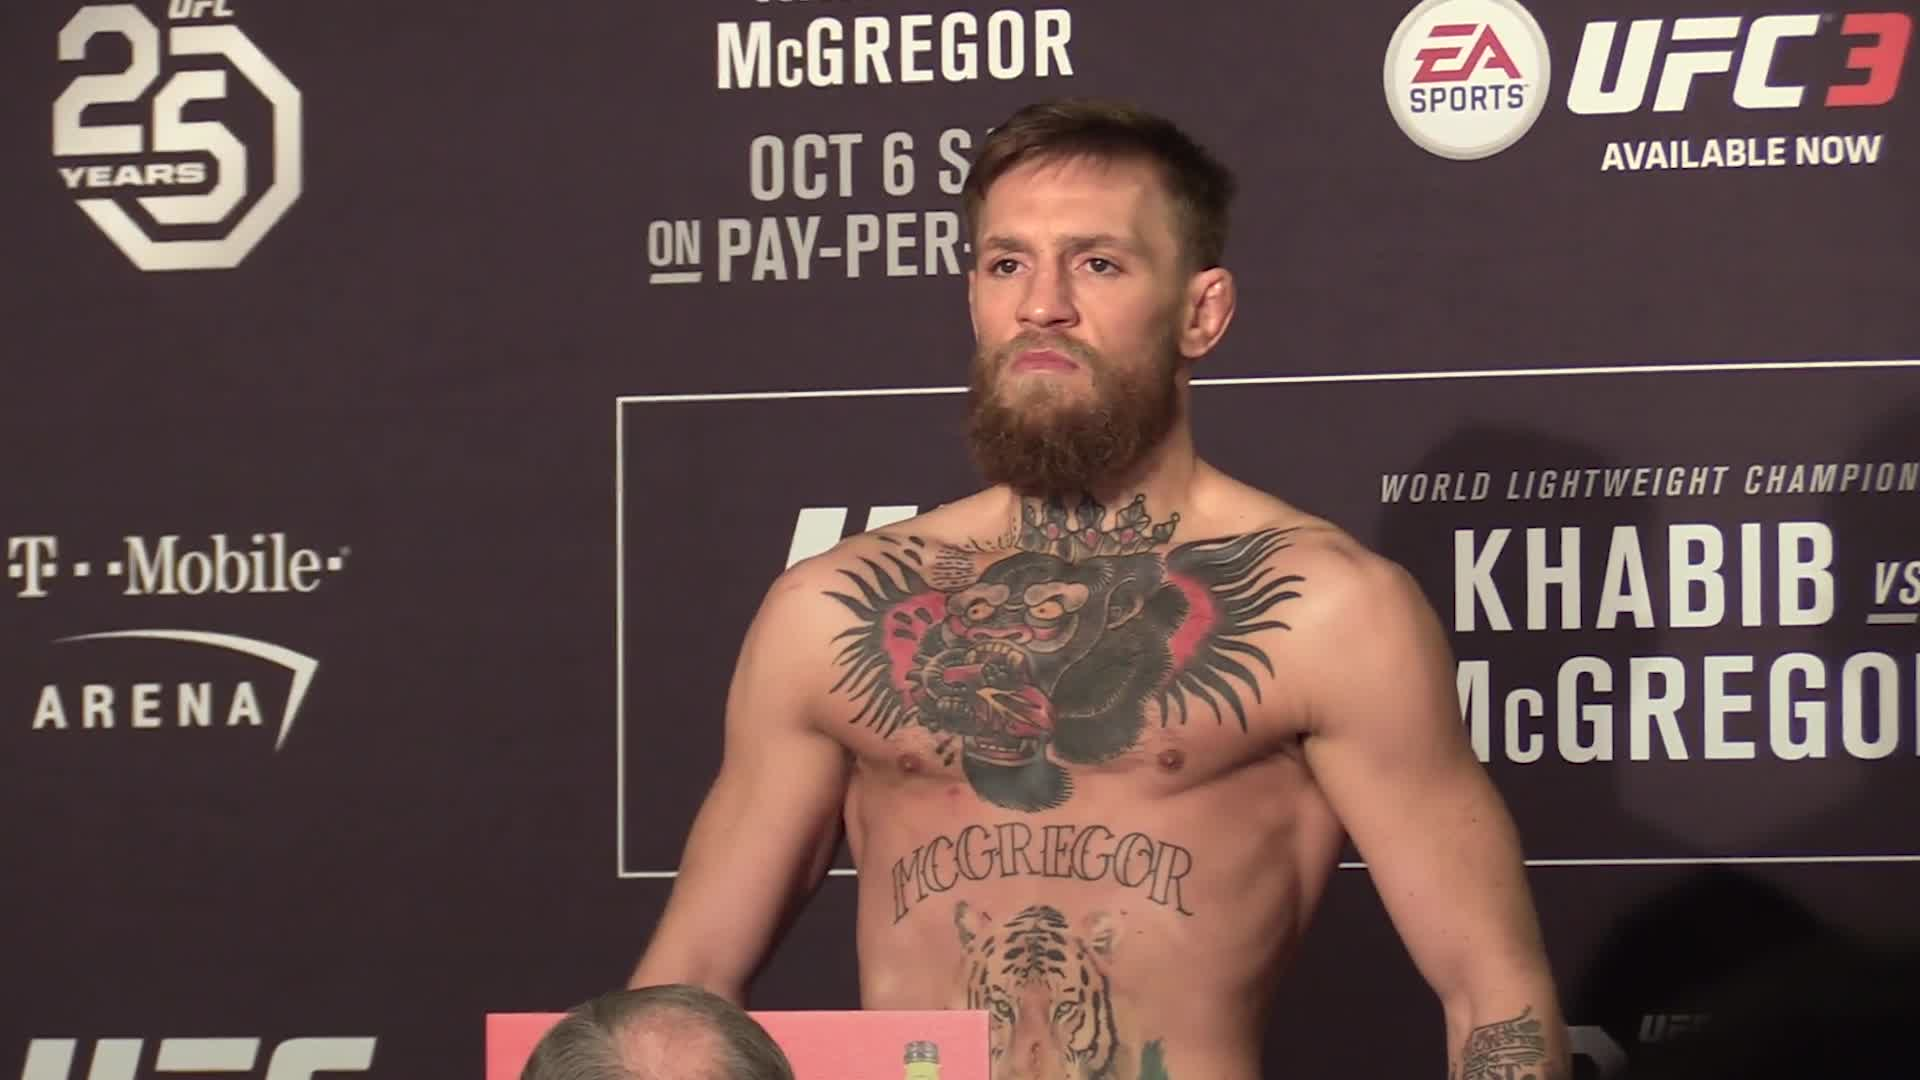 UFC Star Conor McGregor Says He's Retiring, But Fans Aren't Buying It